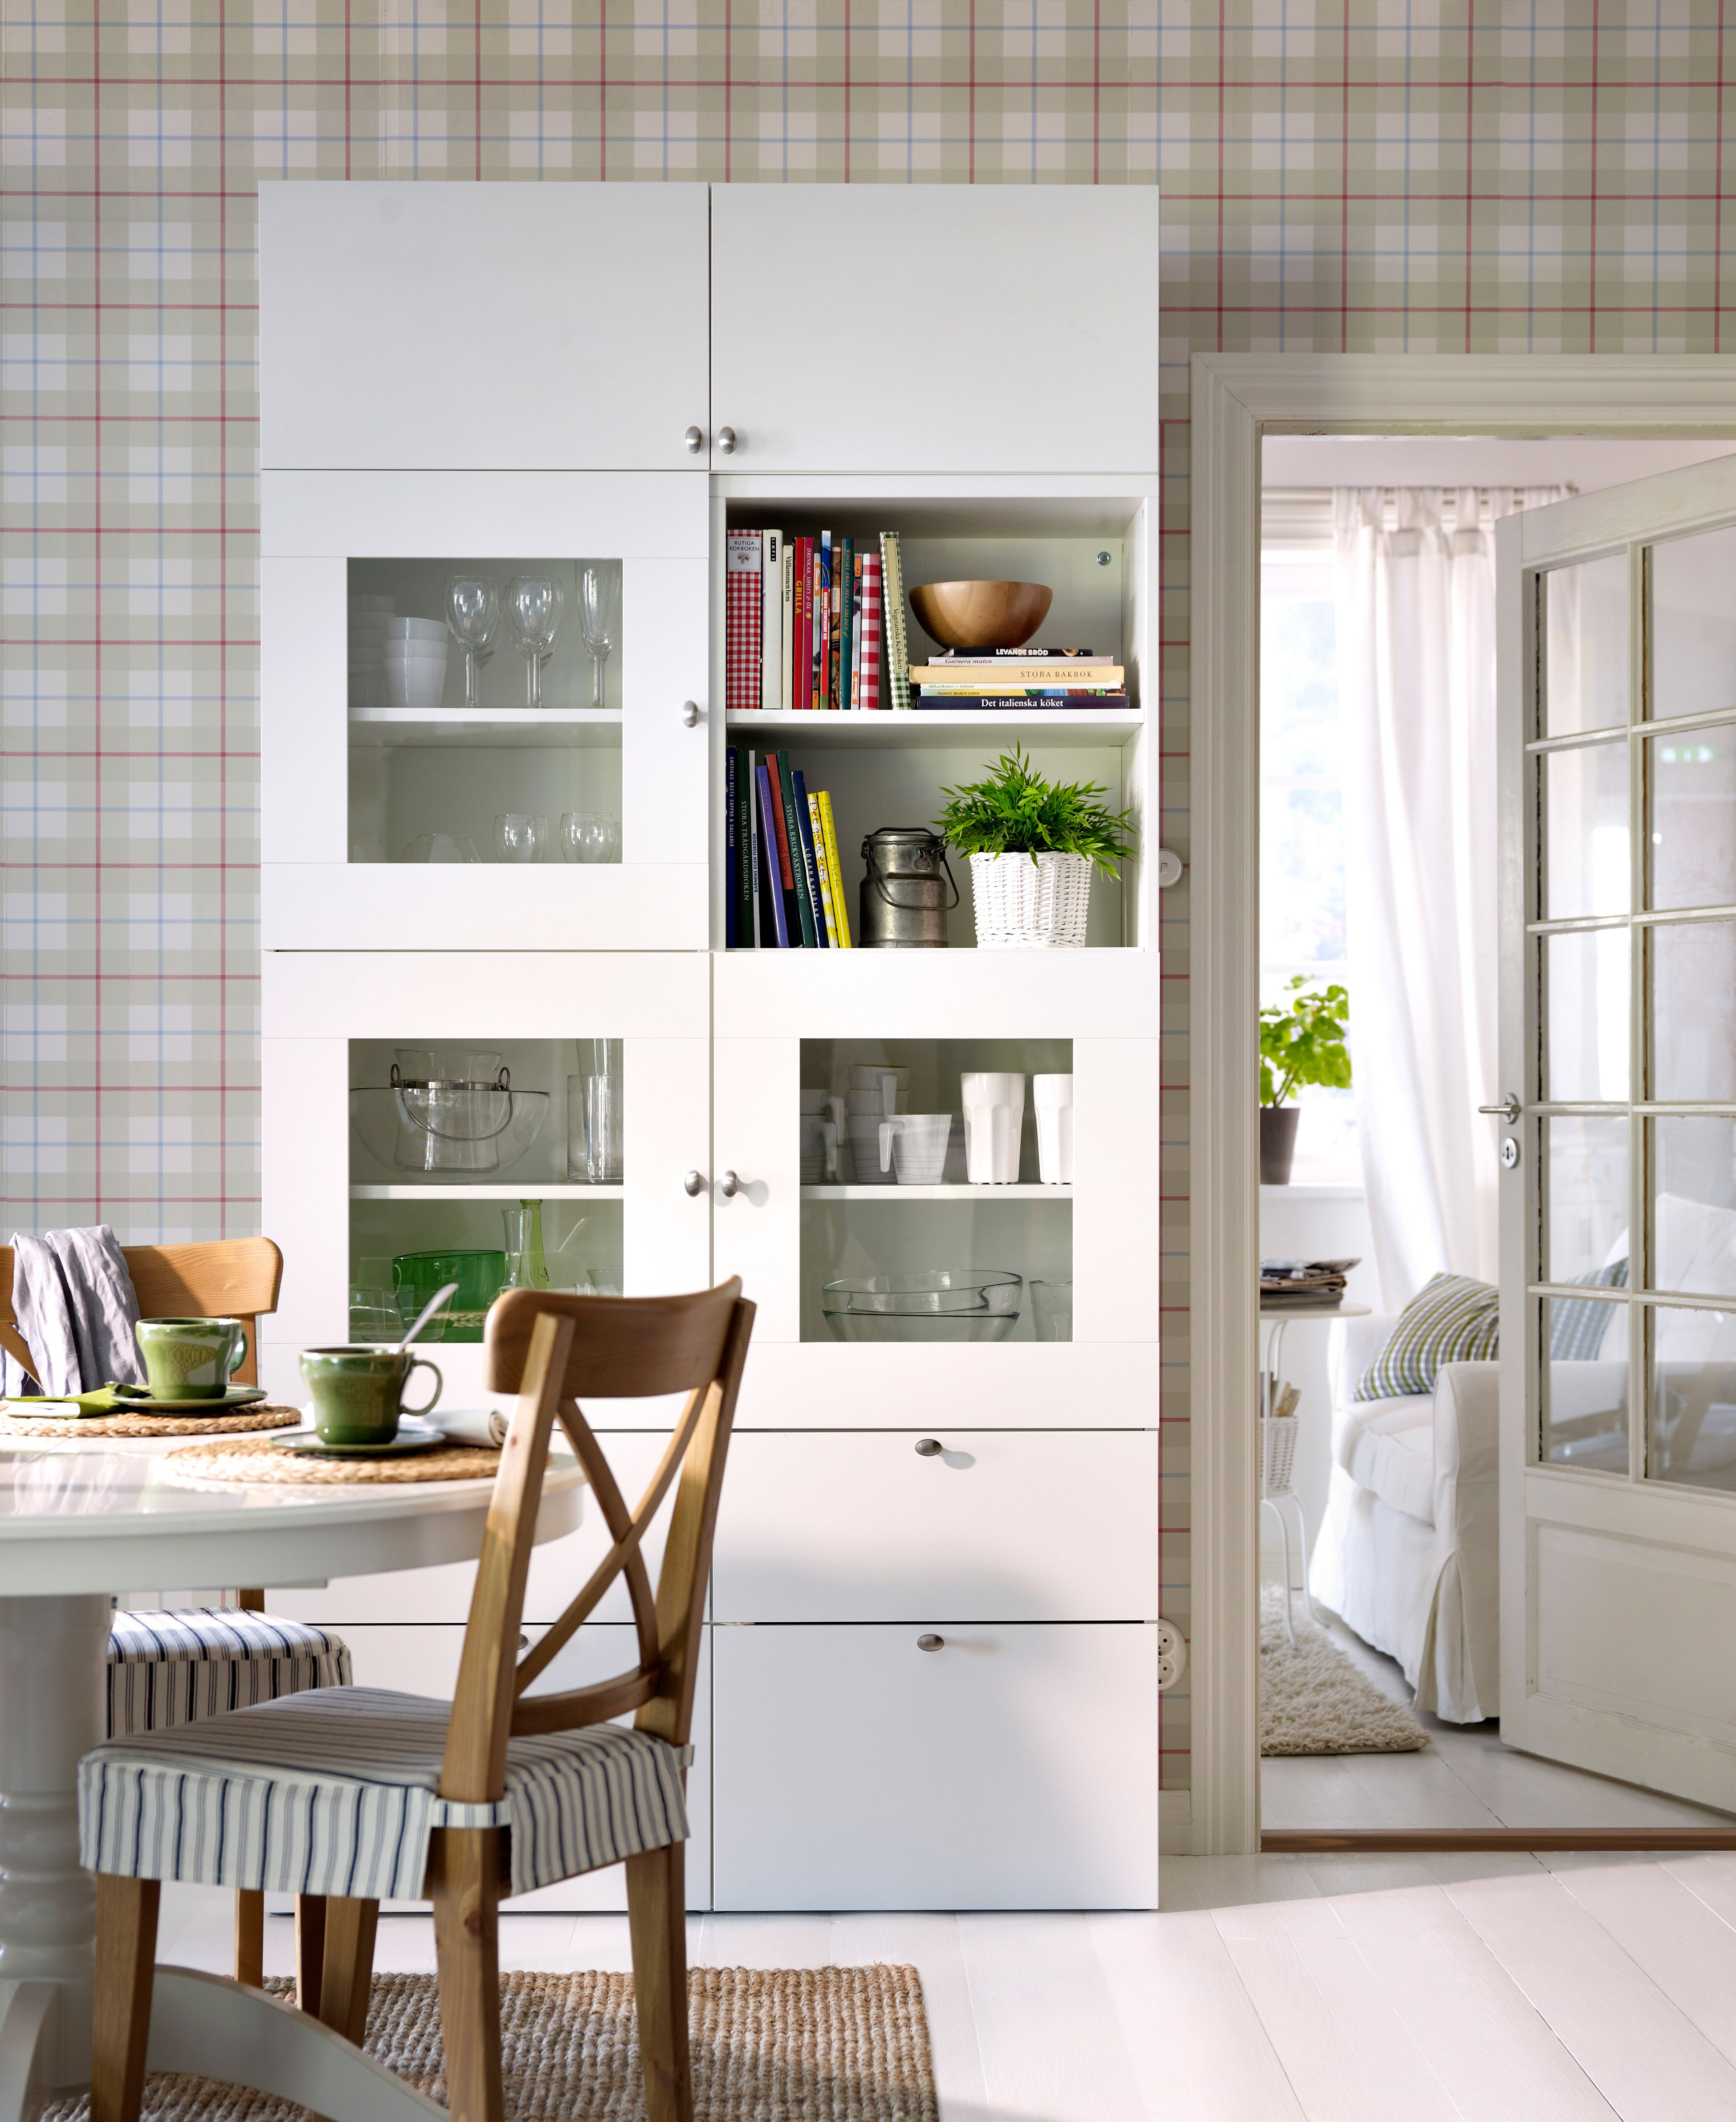 ikea schubladen k che furniture ikea malm kommode 4 schubladen beautiful k che aus. Black Bedroom Furniture Sets. Home Design Ideas